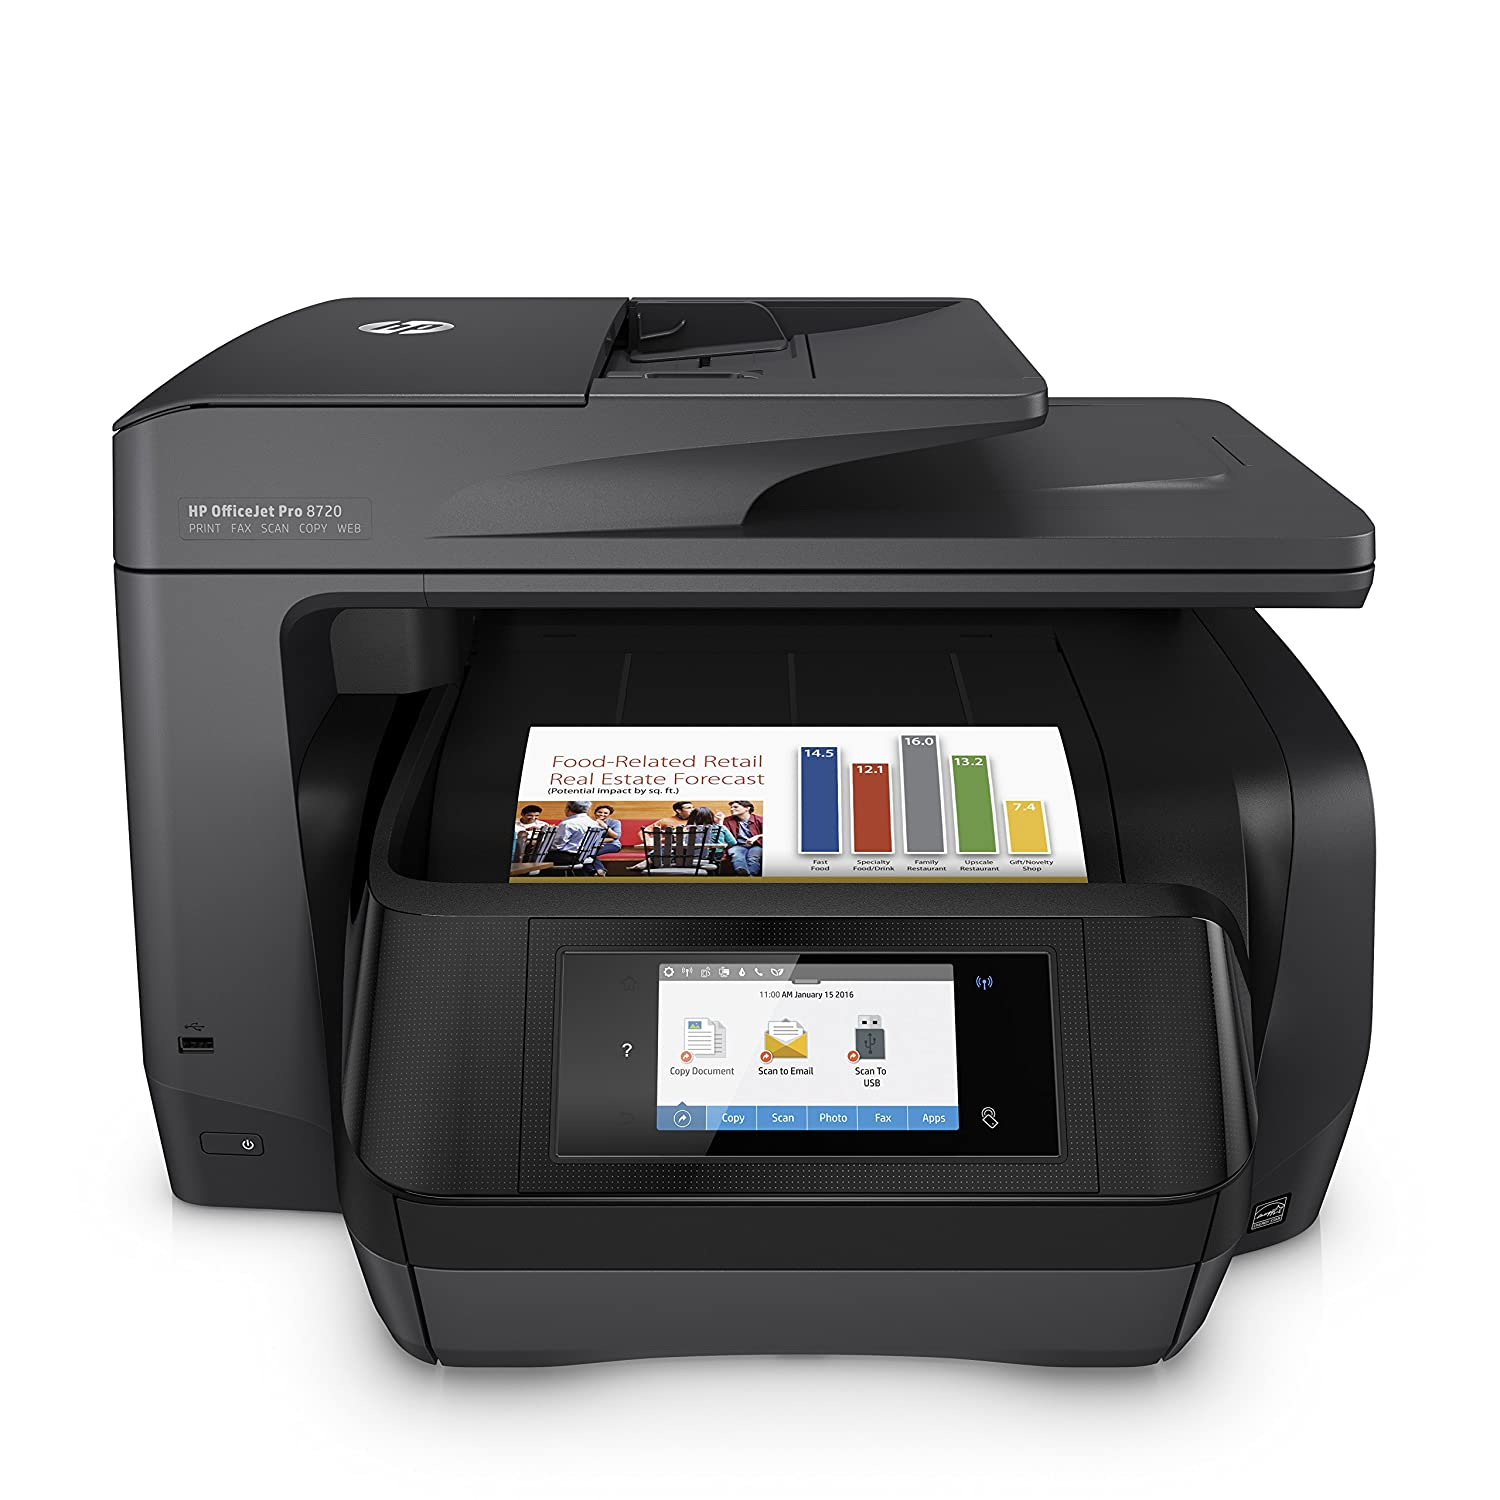 HP OfficeJet Pro 8720 All-in-One Wireless Printer with Mobile Printing, Instant Ink ready - Black (M9L74A)